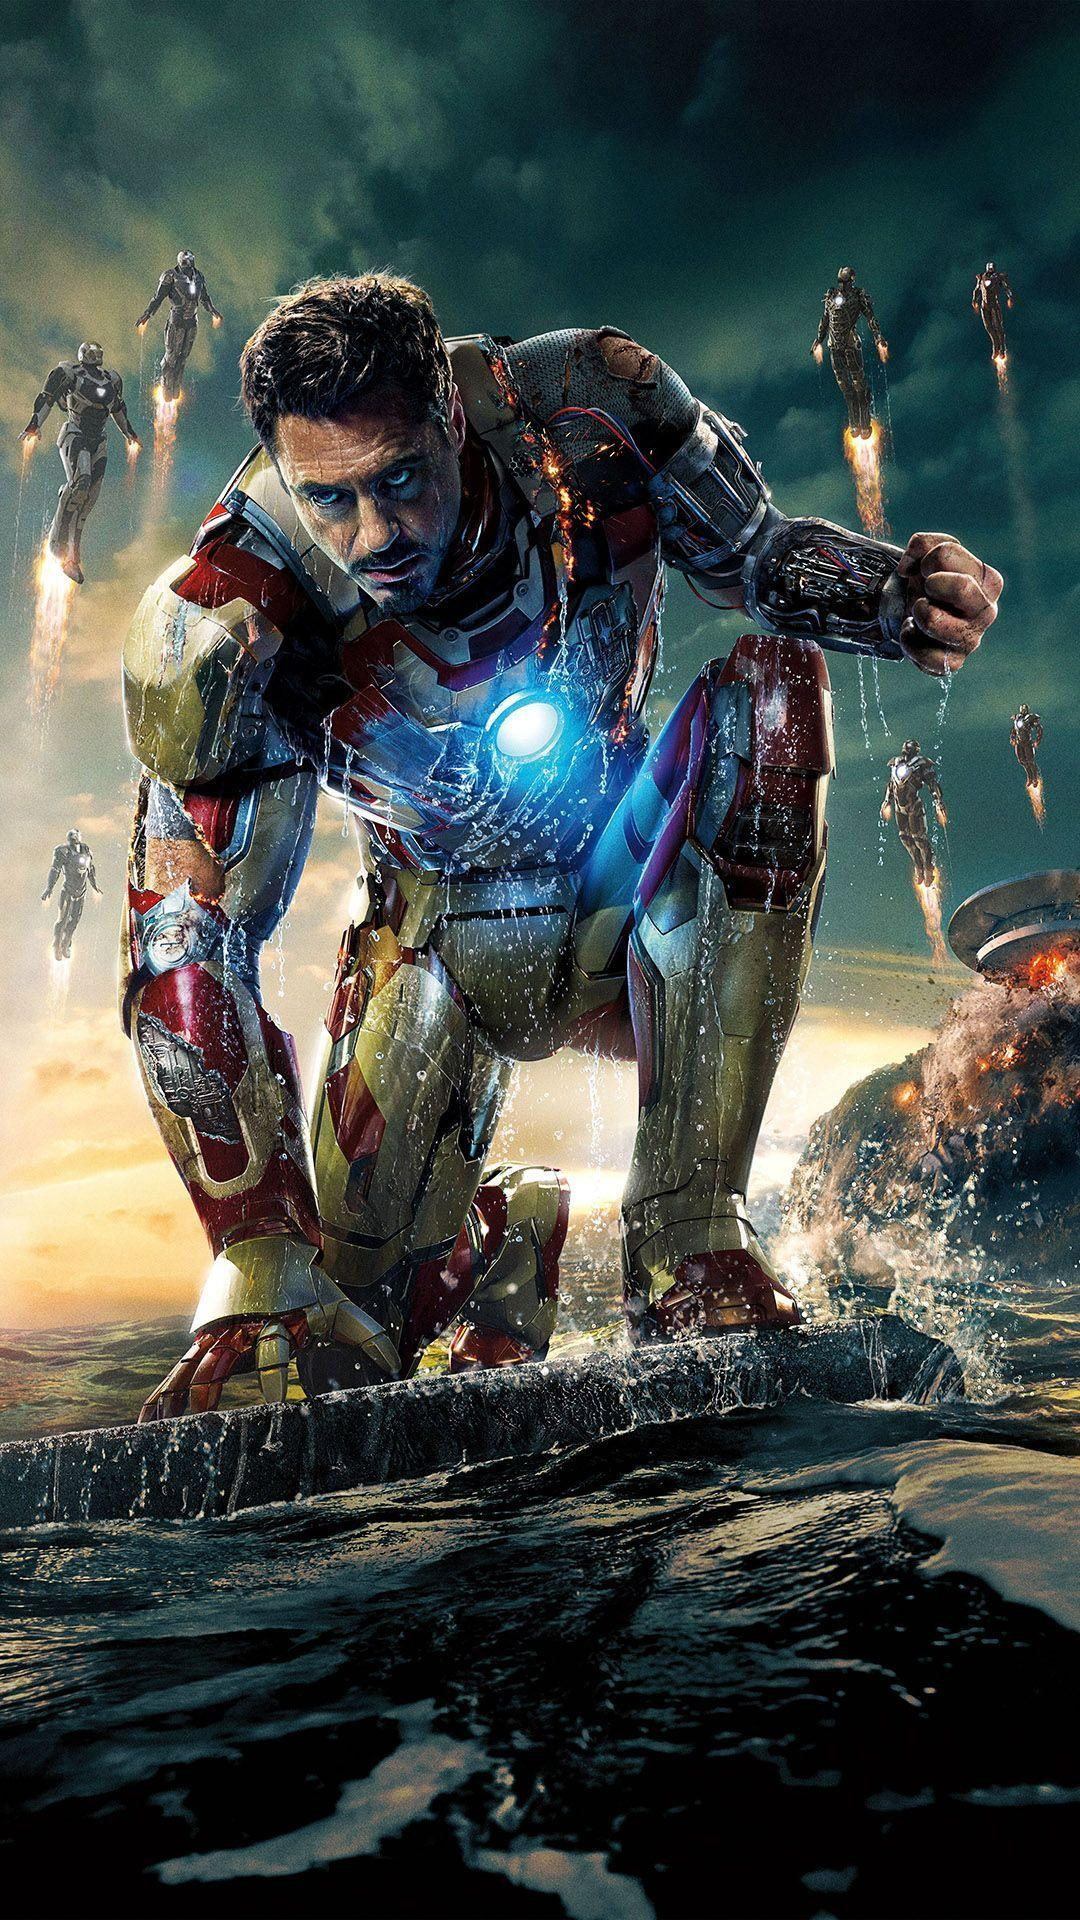 Movies Hd Wallpapers For Mobile